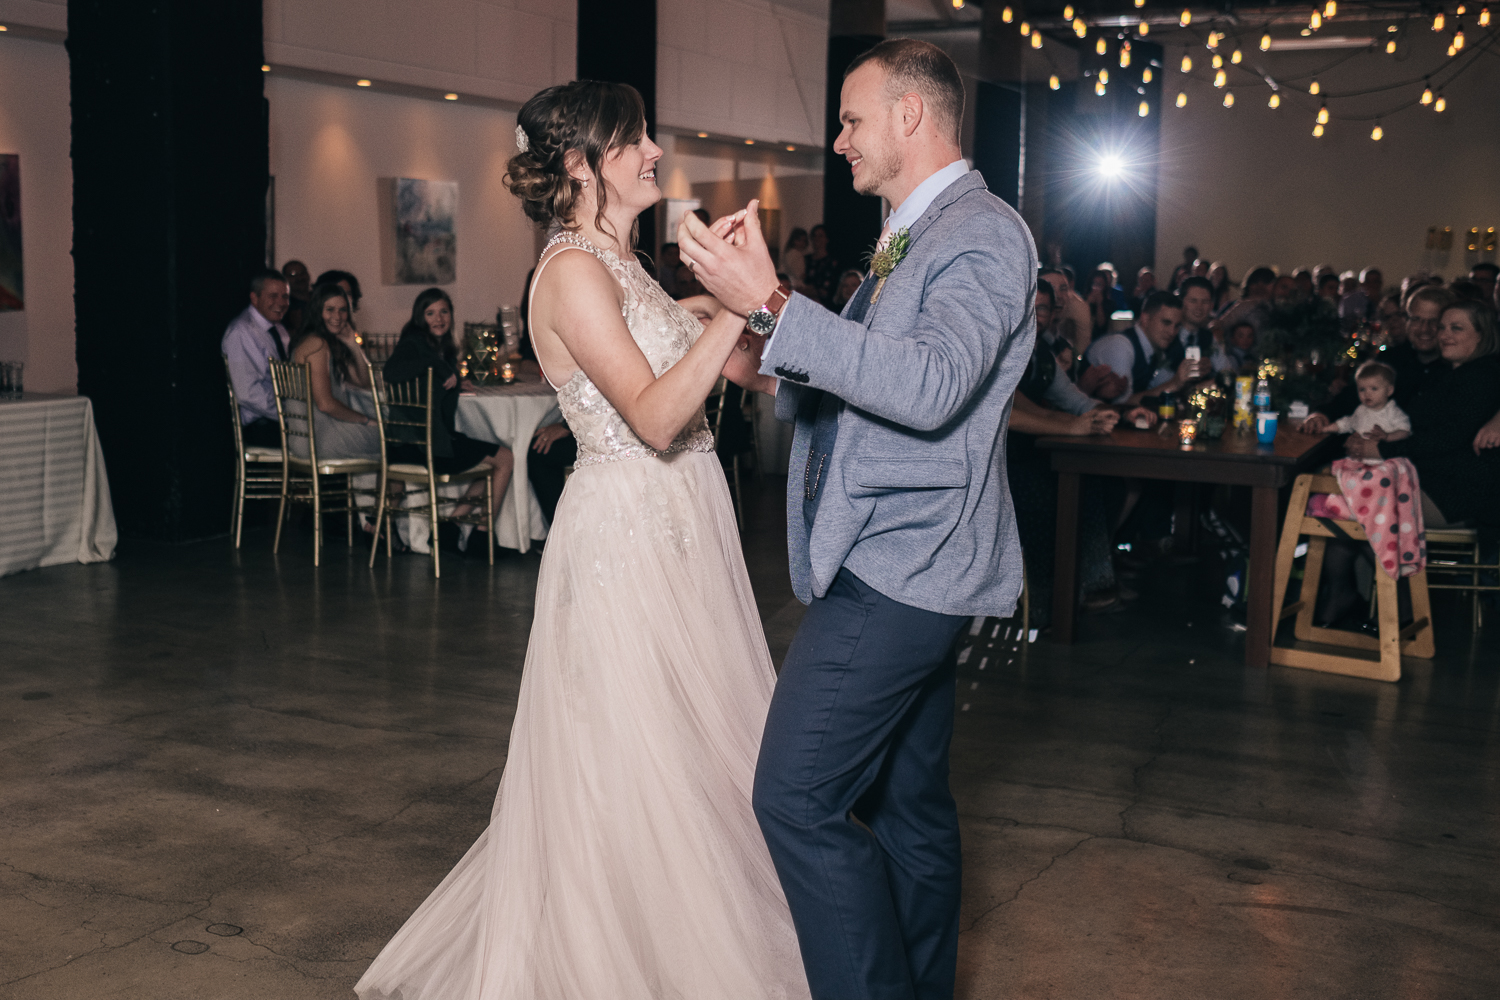 Bride and groom dance to a coreographed dance at their wedding